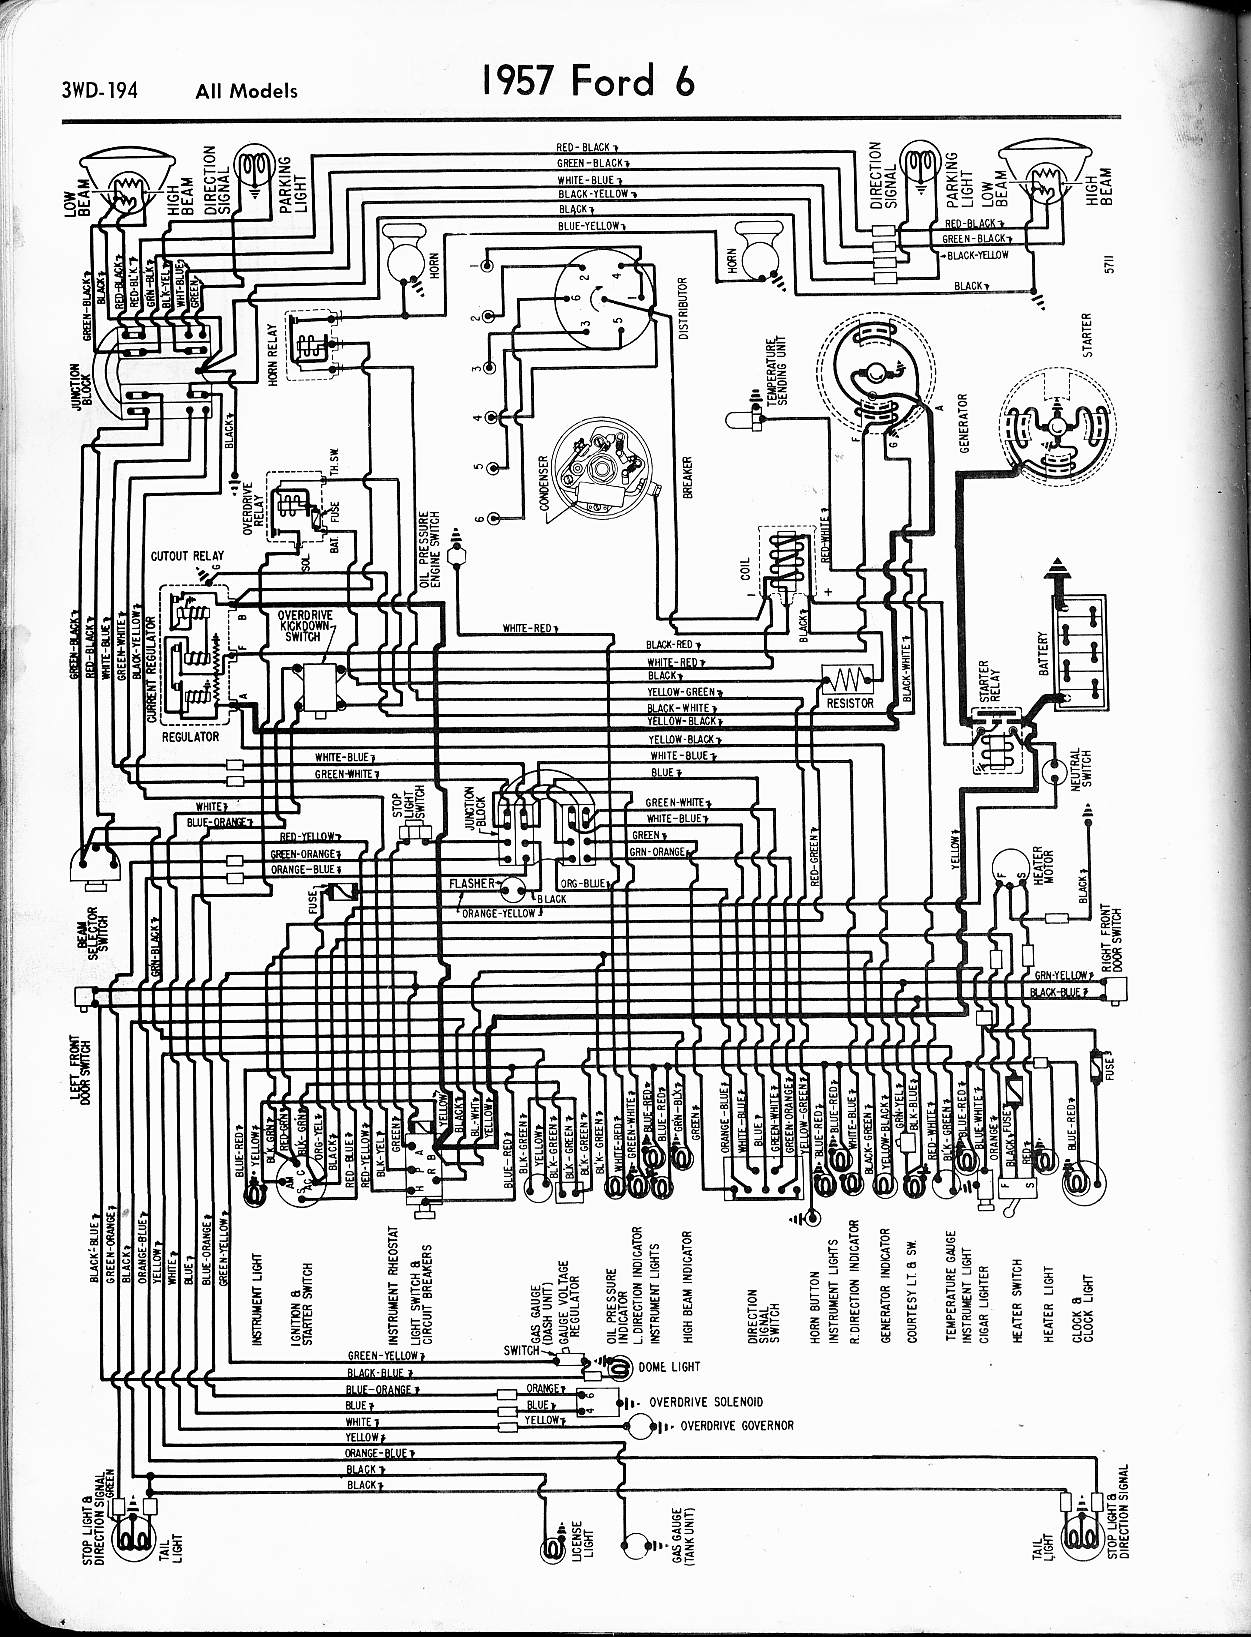 57 65 Ford Wiring Diagrams Ford Starter Solenoid Wiring Diagram Ford Wiring  Diagrams